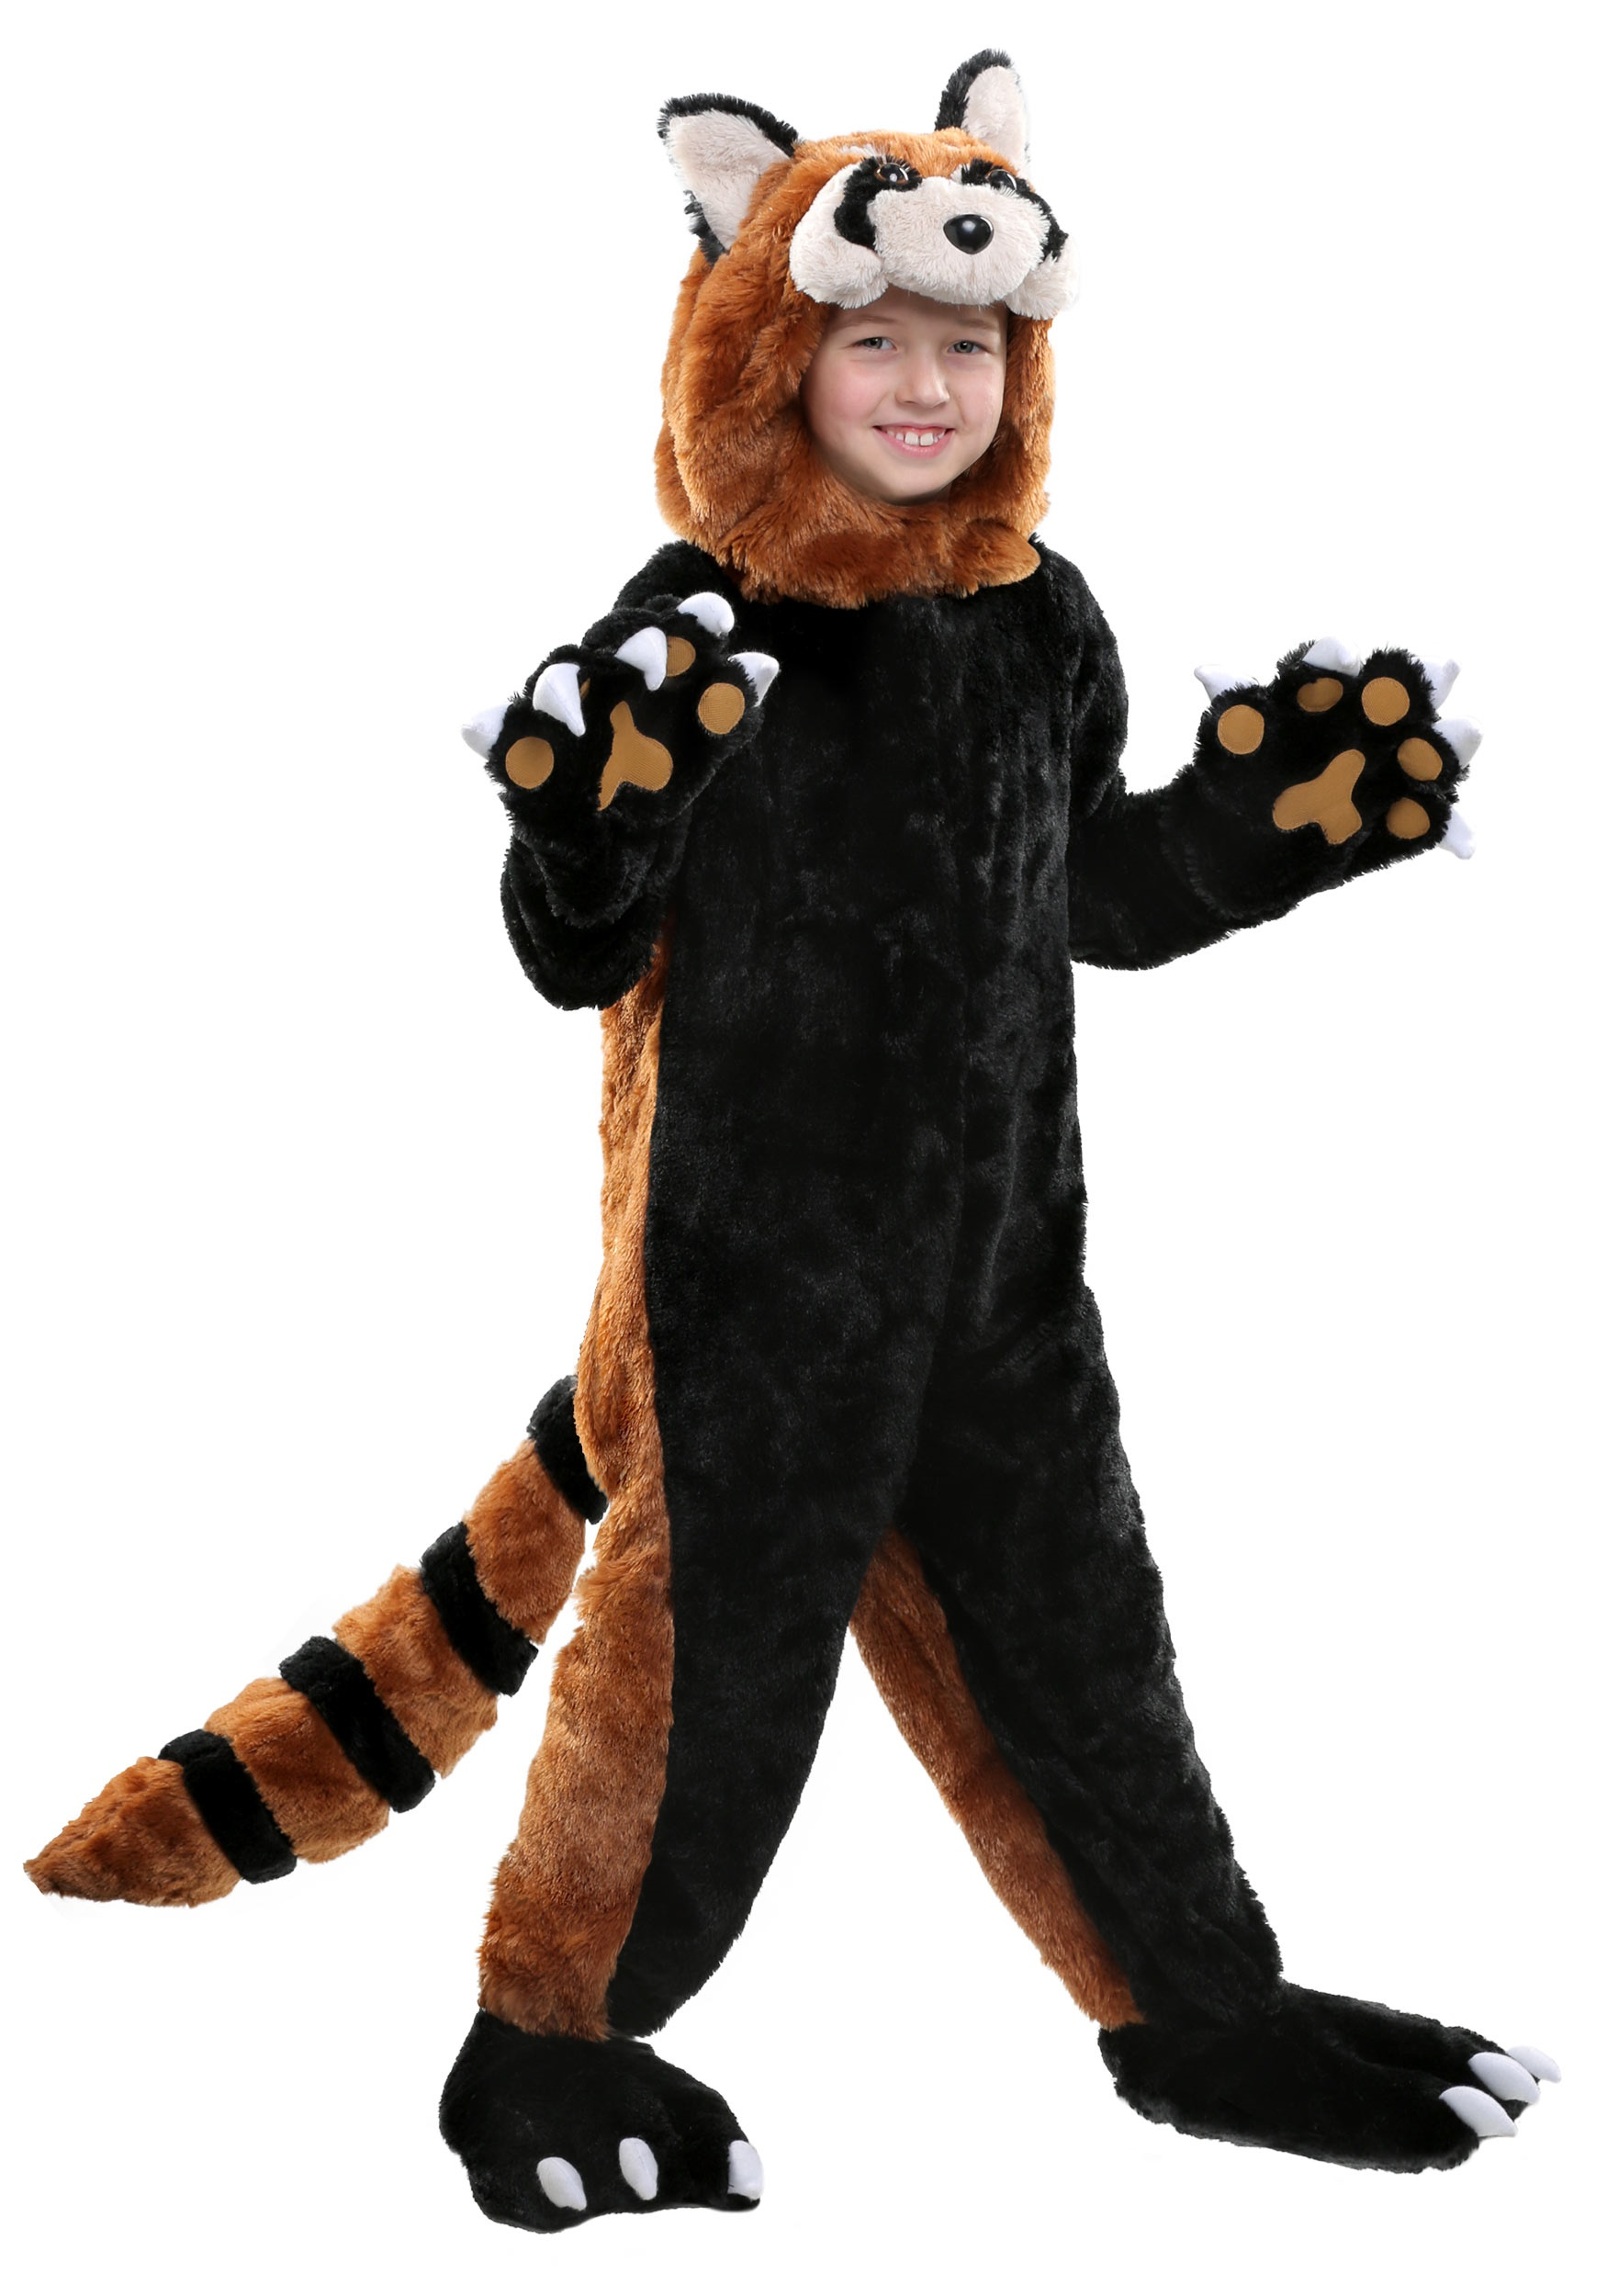 Image of: Jumpsuit Child Red Panda Youtube Panda Costumes Sexy Panda Costumes Kung Fu Panda Costumes